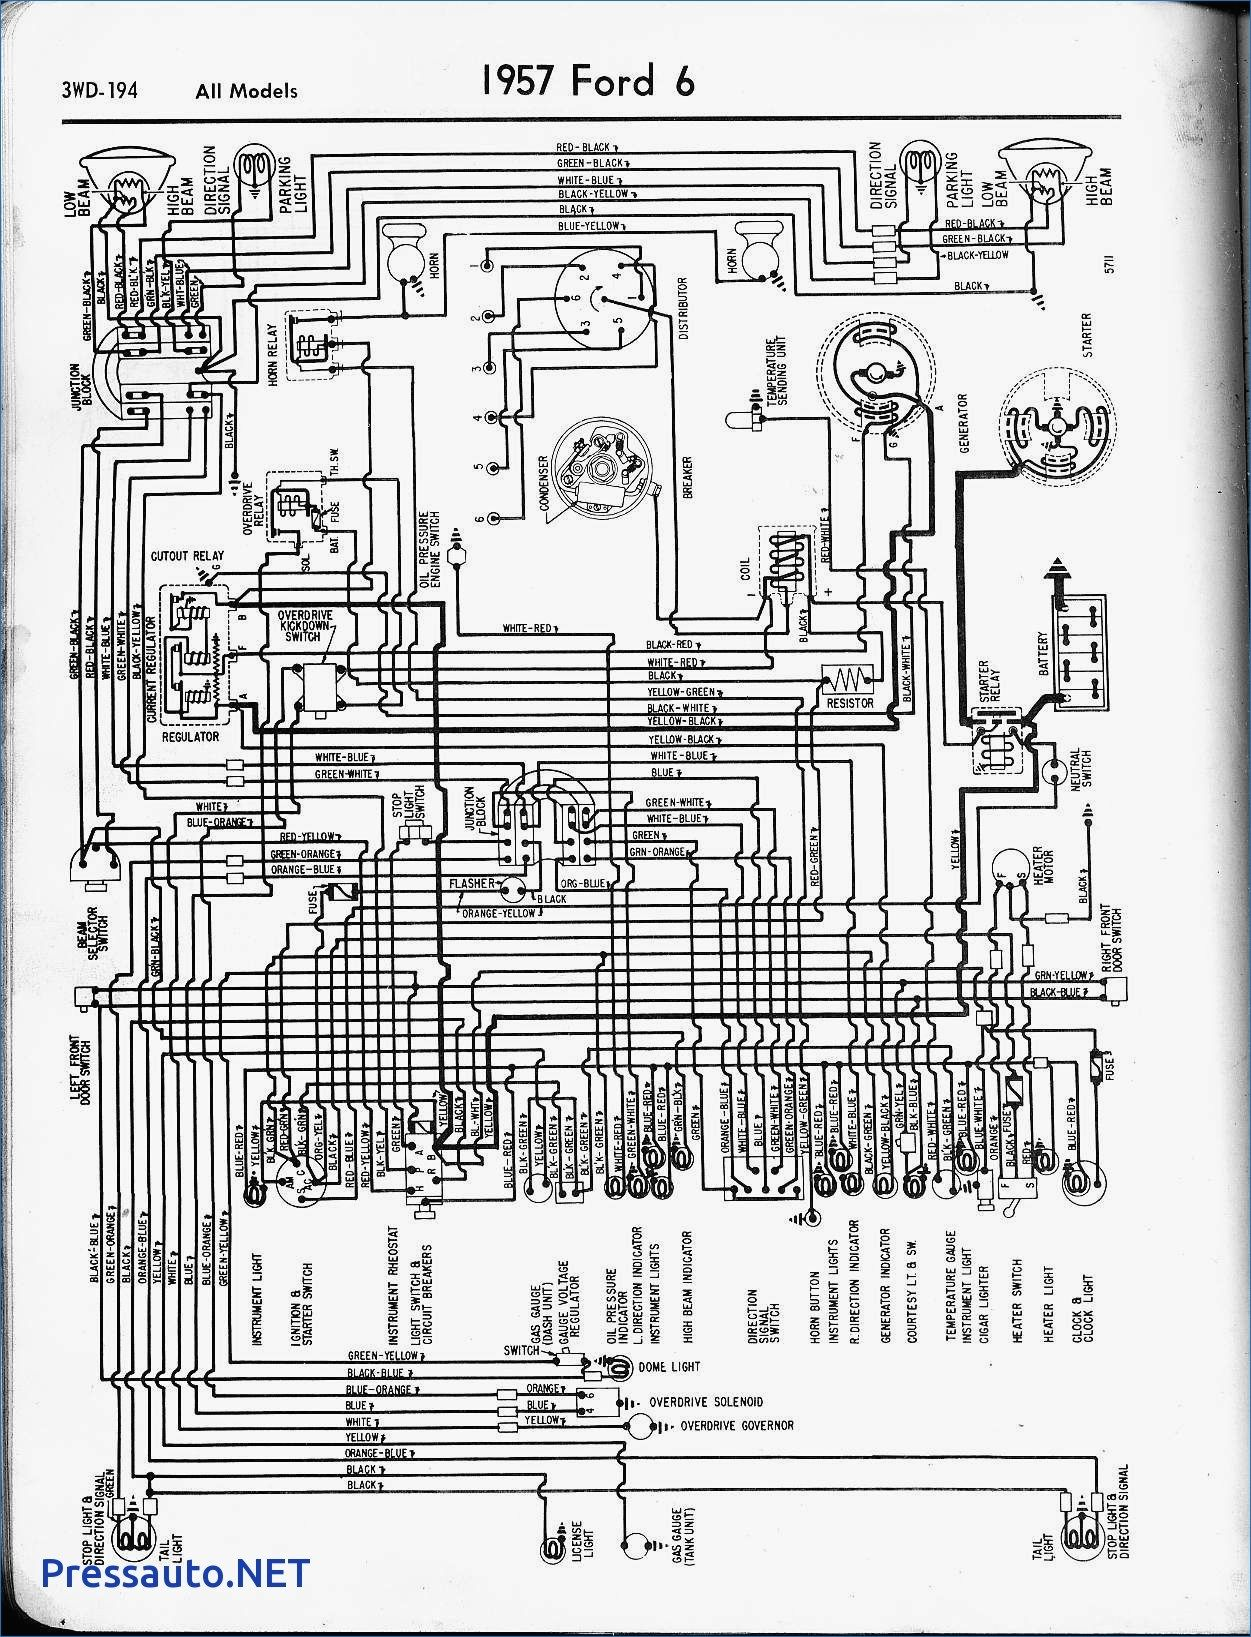 peugeot 307 power steering wiring diagram pressauto net in on rh pinterest com wiring diagram peugeot [ 1251 x 1637 Pixel ]